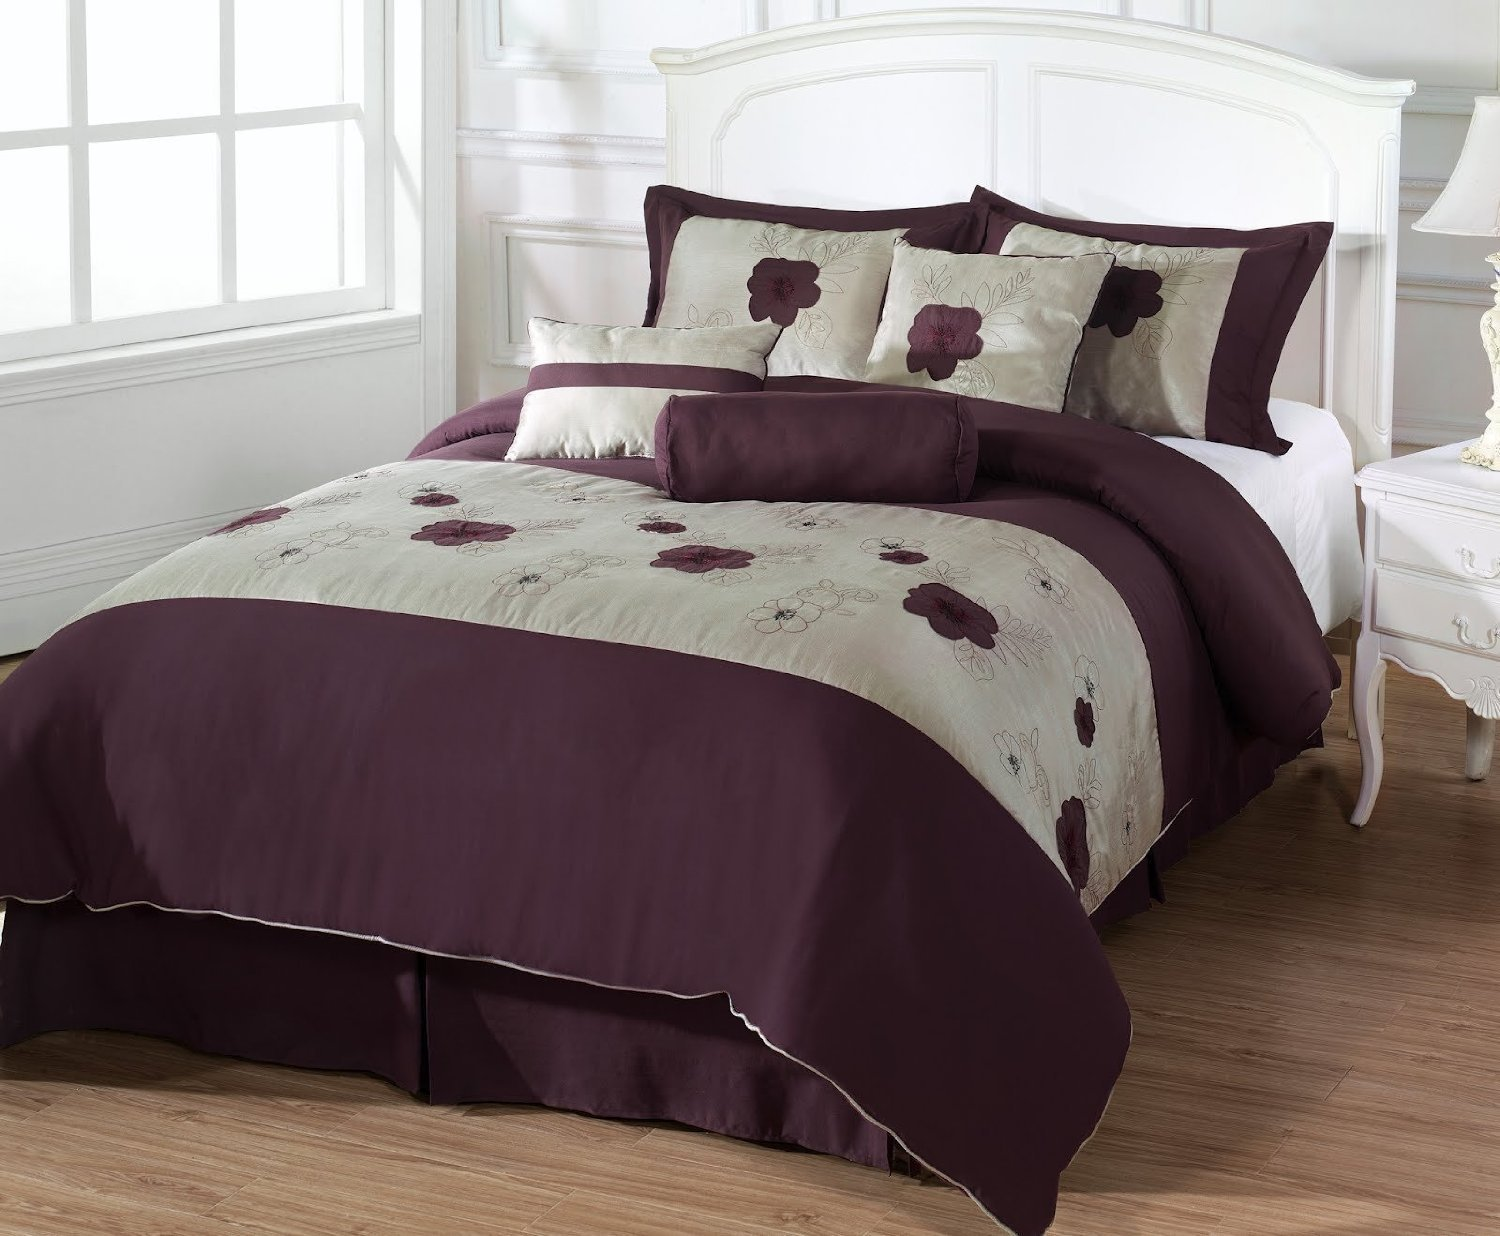 california king size comforter sets d printed bedding sets twin  - leila  piece down alternative floral comforter set queen purple